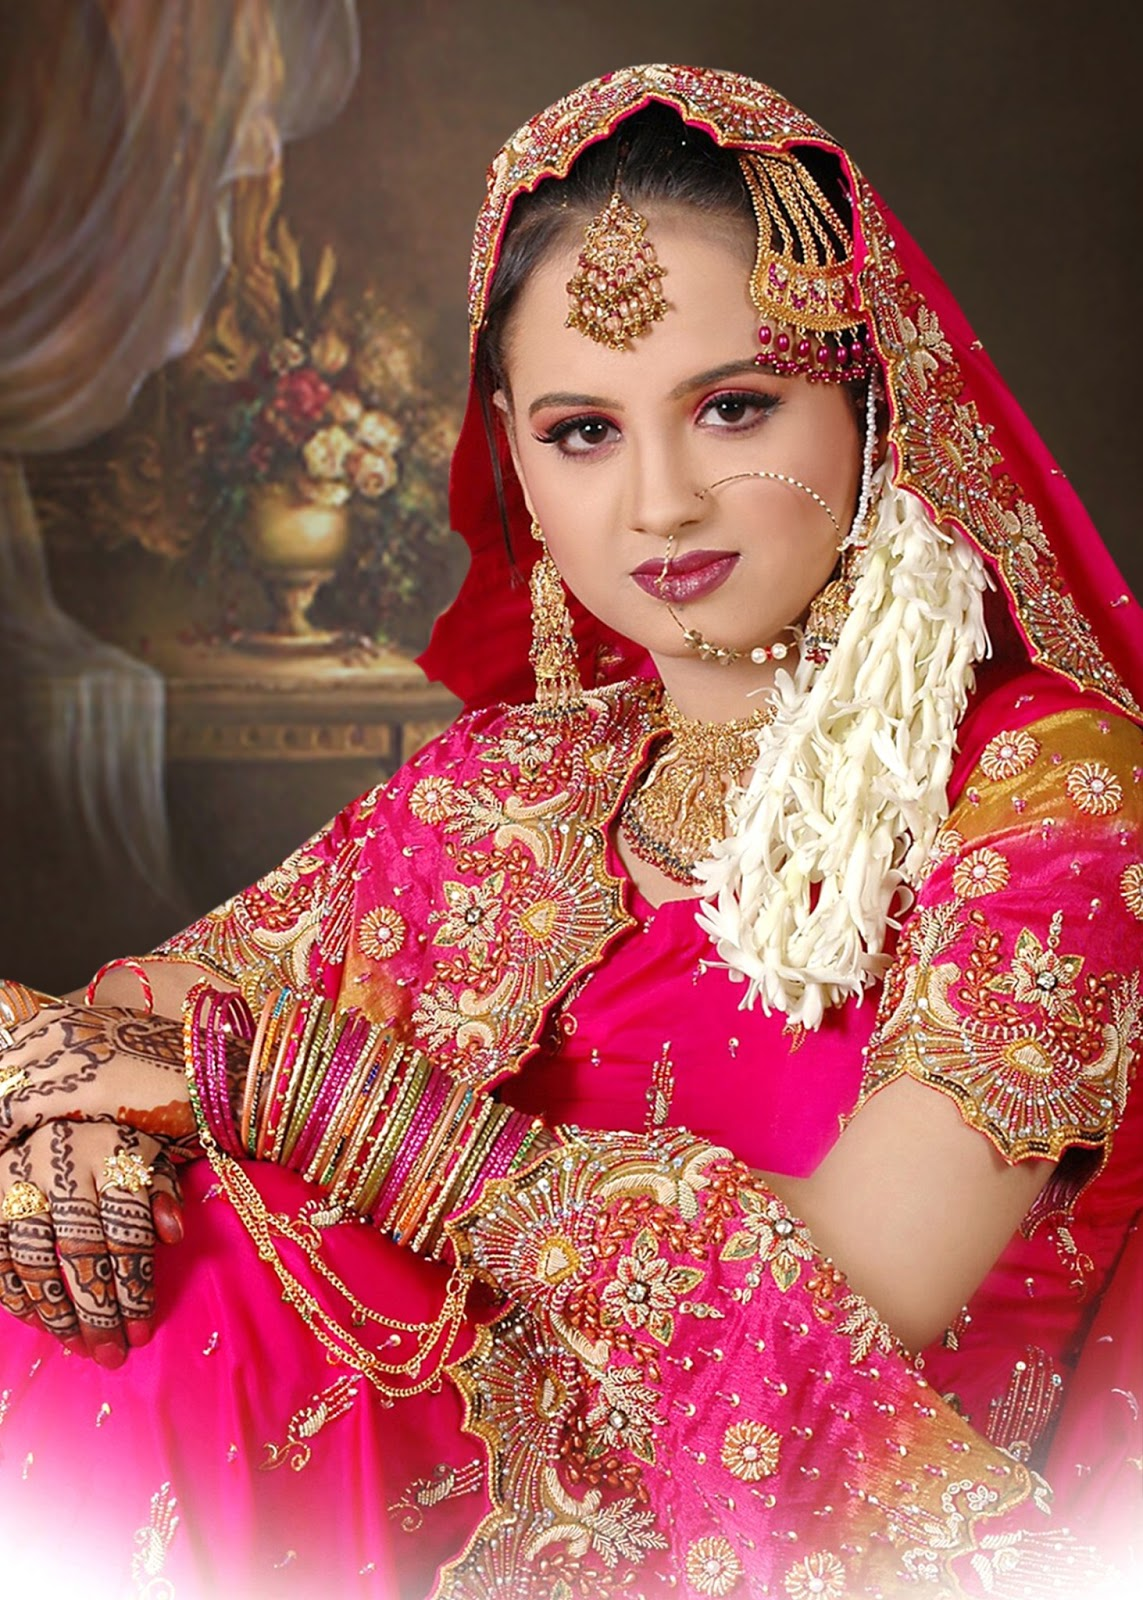 dulhan hd wallpaper - 28 images - beautiful dulhan makeup pic